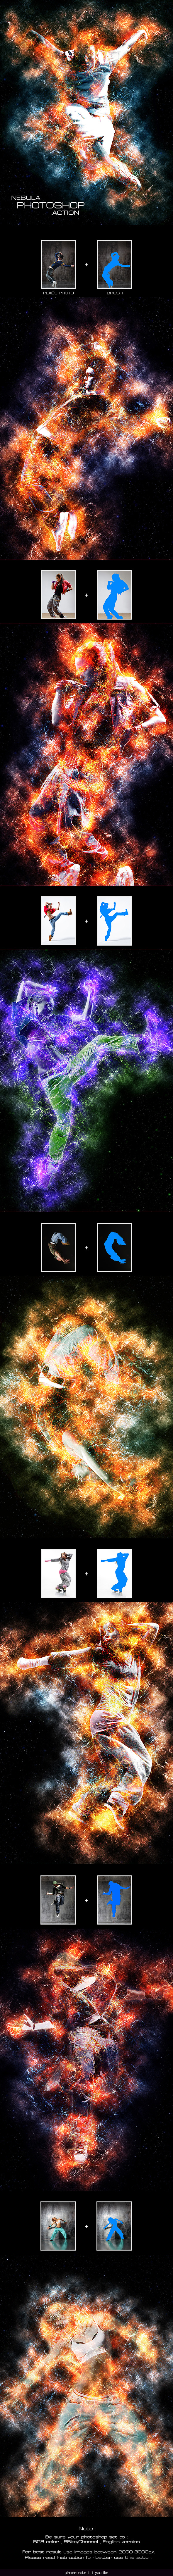 GraphicRiver Nebula Photoshop Action 11789670